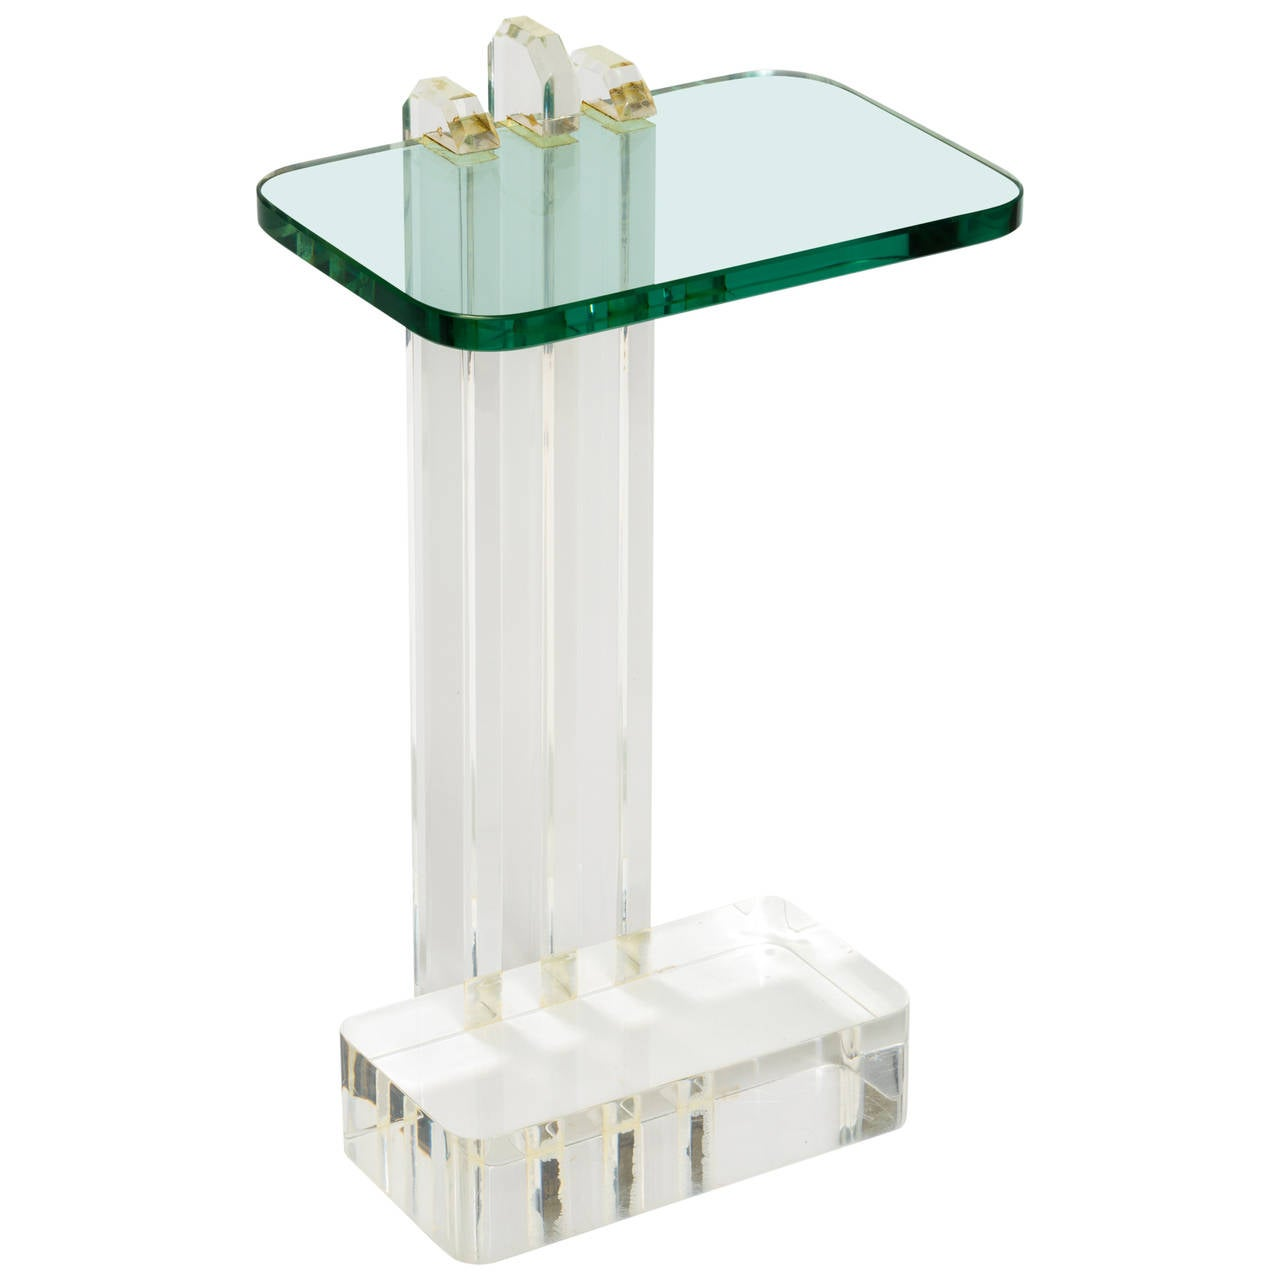 Modern lucite and glass side table for sale at 1stdibs for How to make lucite furniture